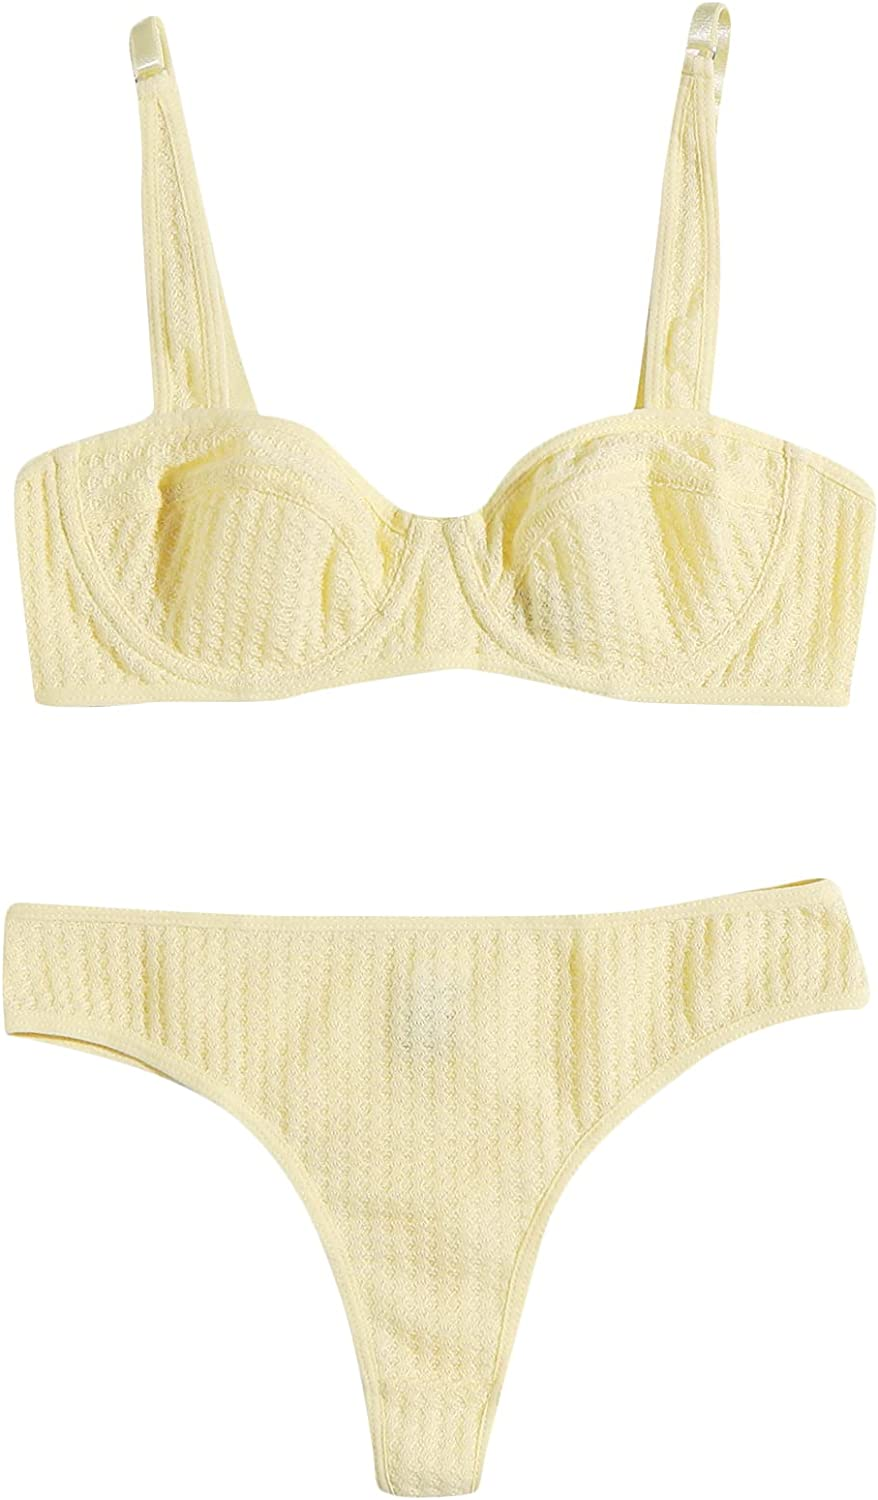 Floerns Women's Lingerie Set Textured Underwired Bra and Panty Nightgown